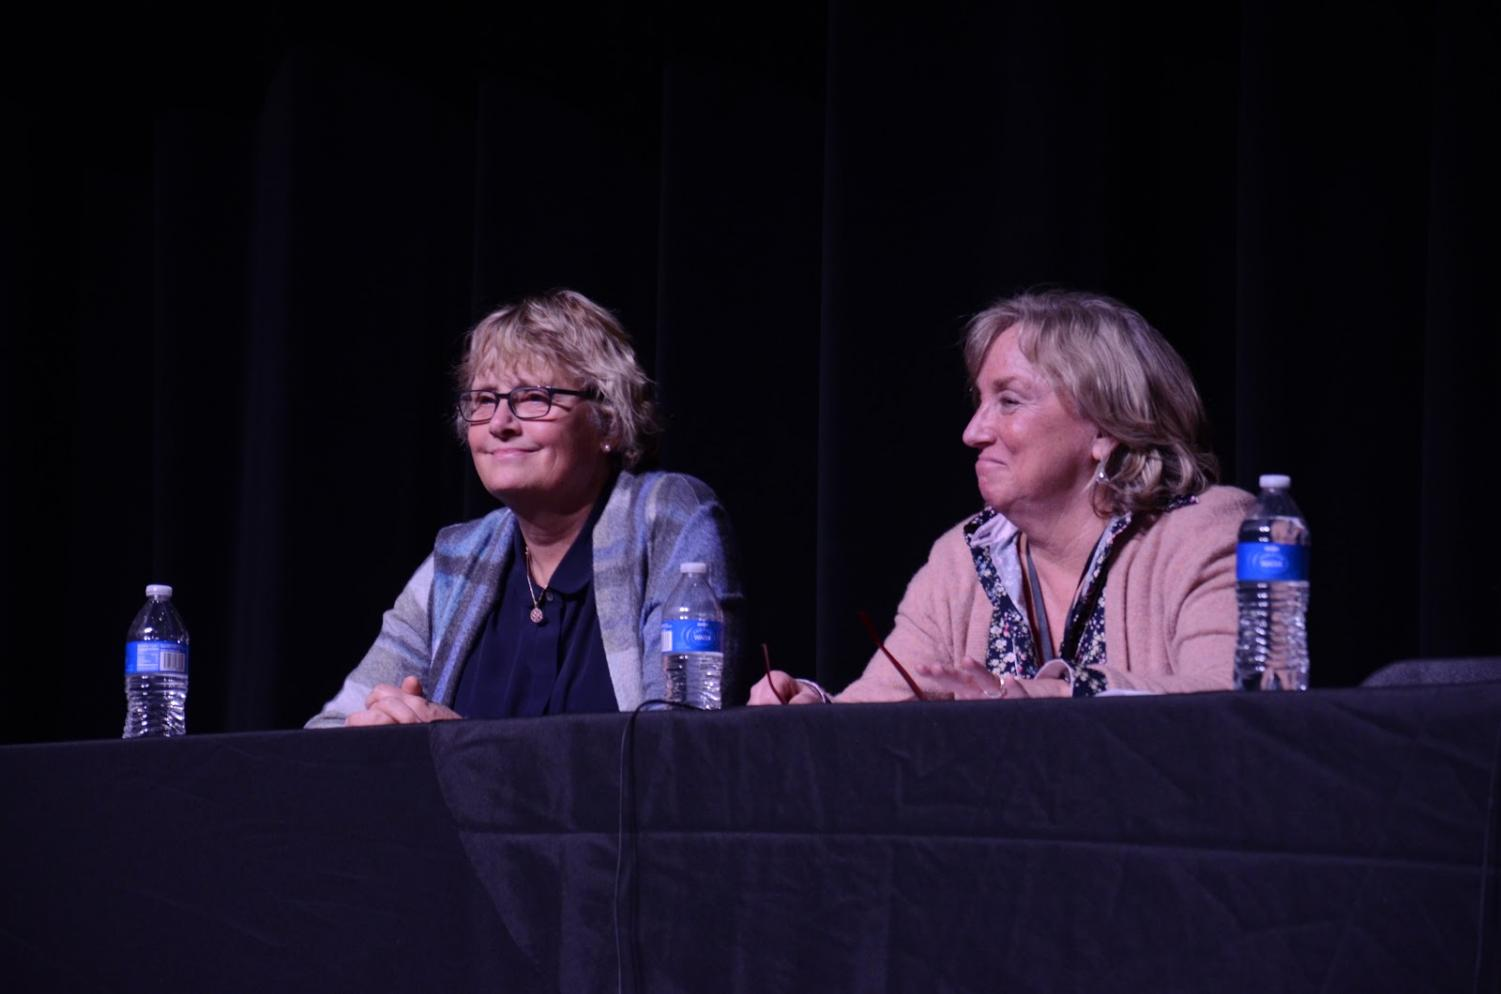 Dr. Charlene Gaebler (left) and Sue Martin (right) observe another speaker.